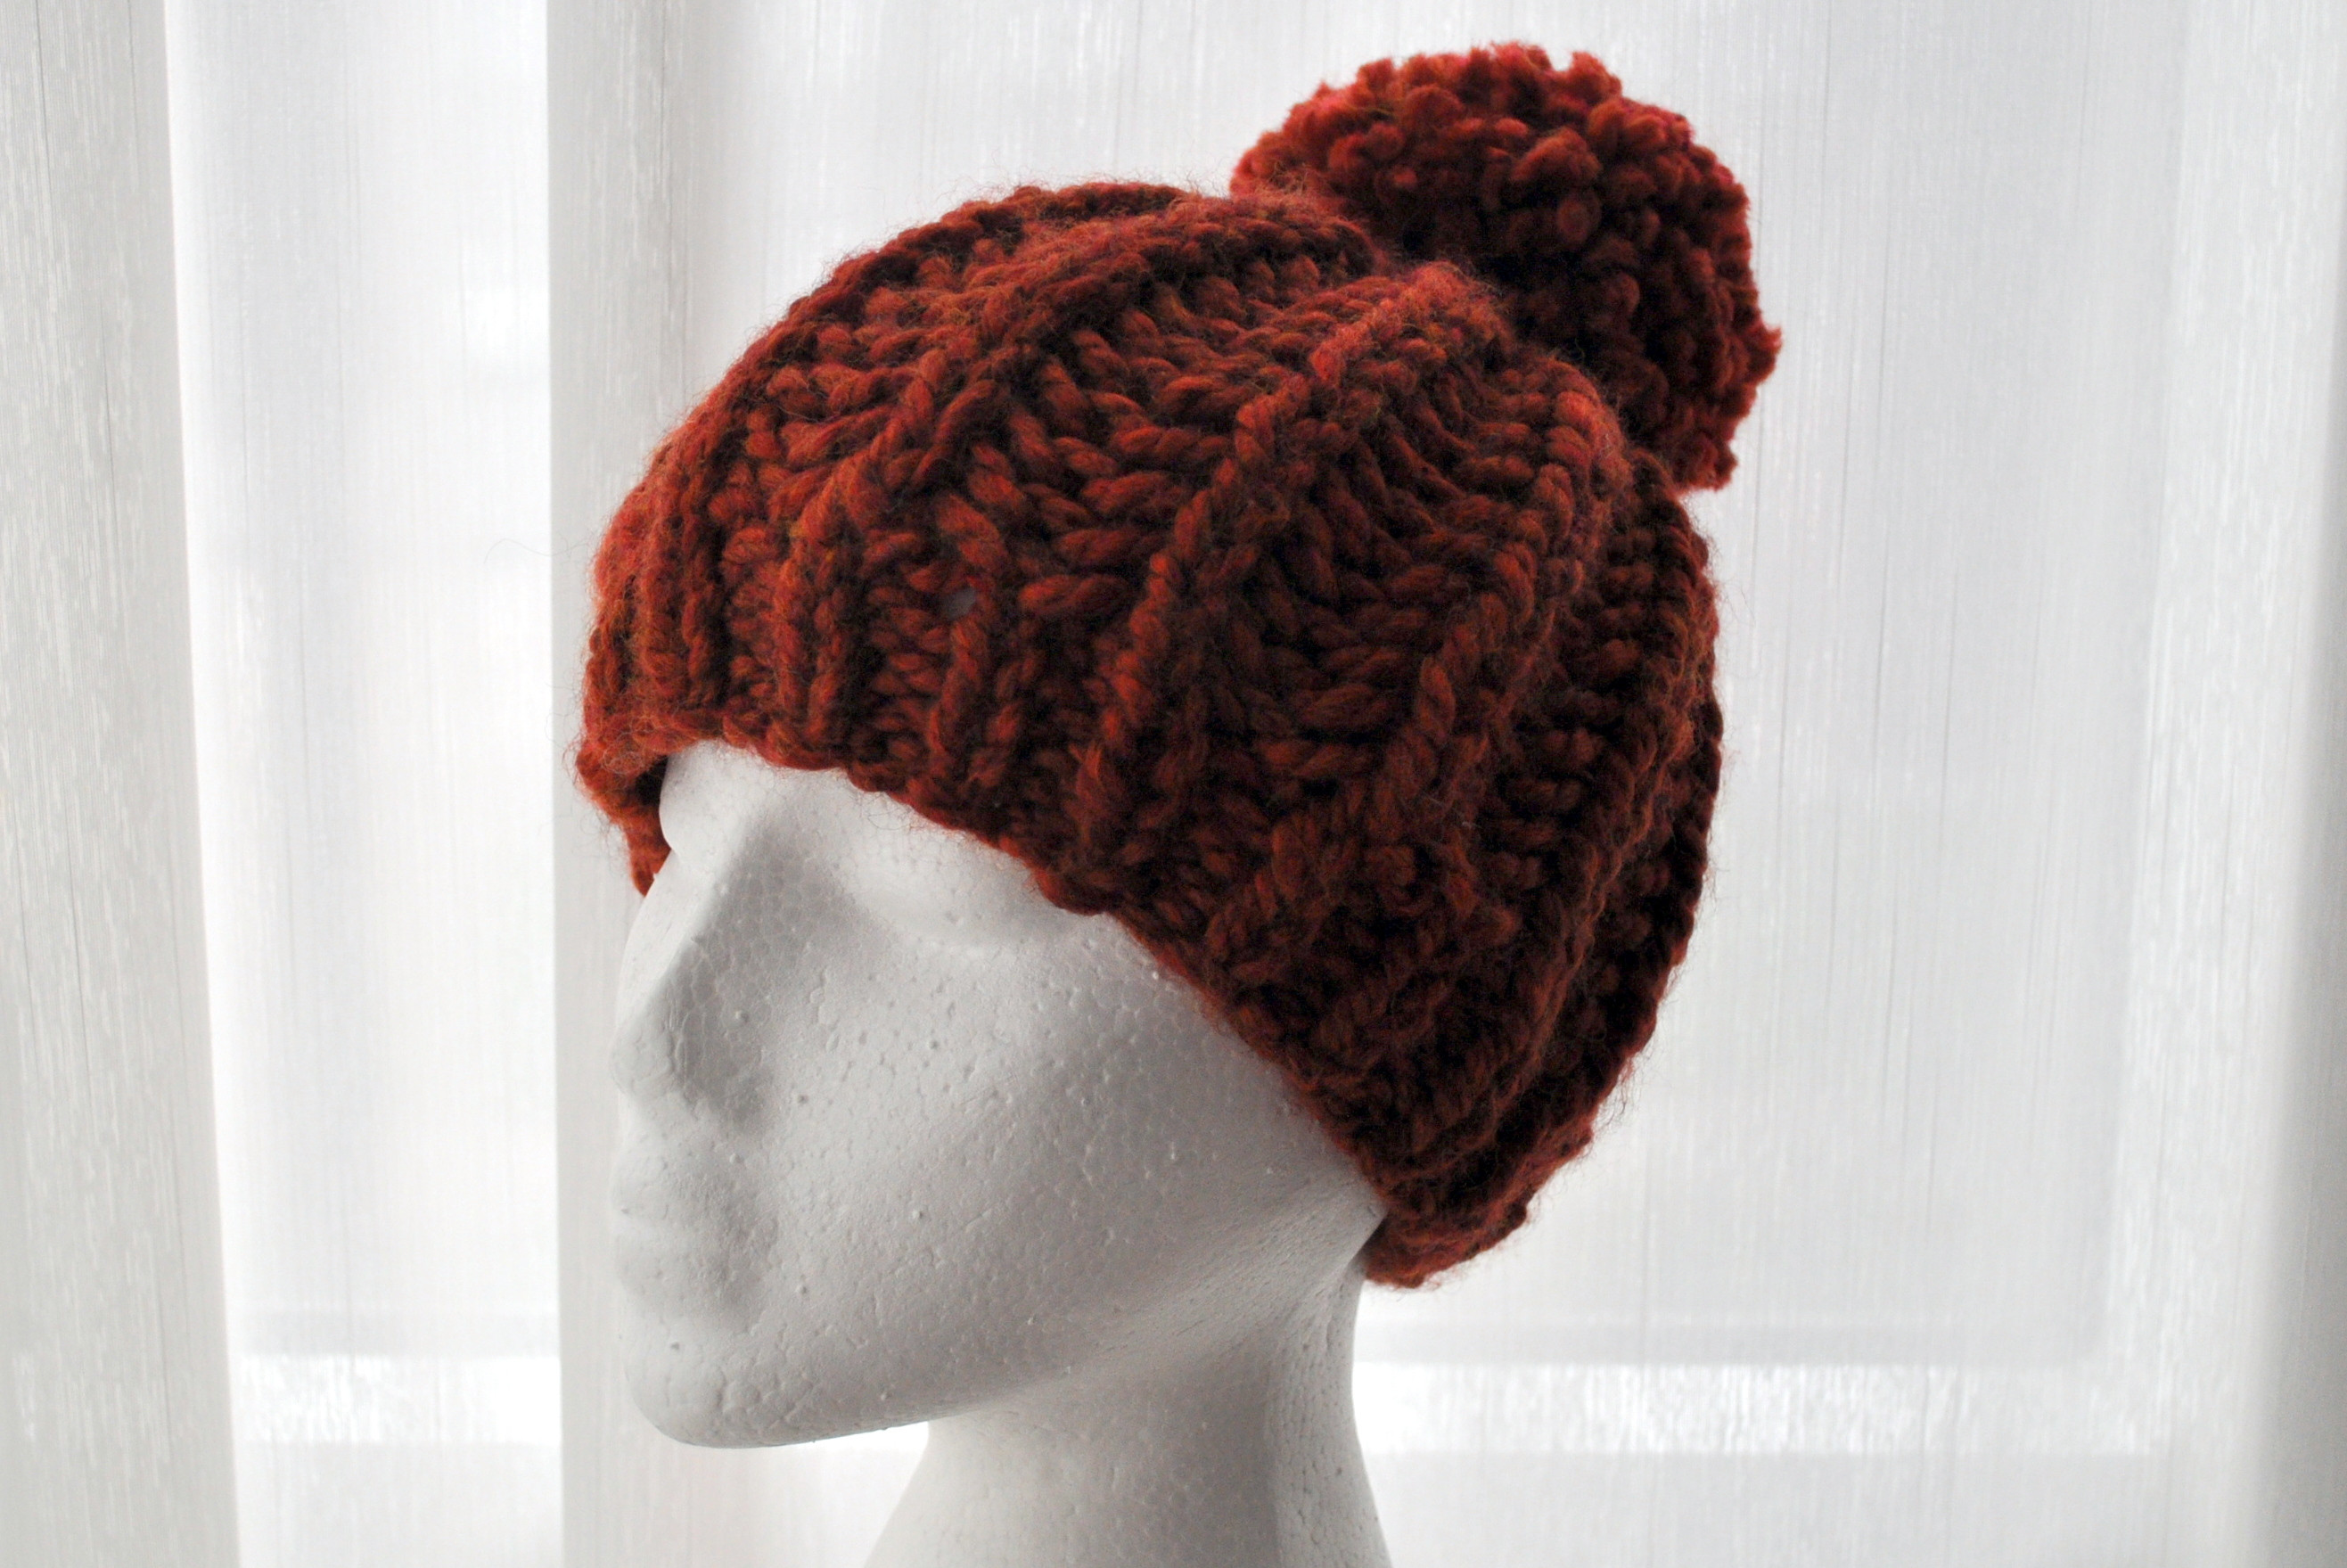 Inspirational Free Pattern Knit Fisherman Ribbed Hipster Hat Knitting and Crochet Patterns Of Luxury Simple Knitting Patterns 8 Crochet and Knit Knitting and Crochet Patterns